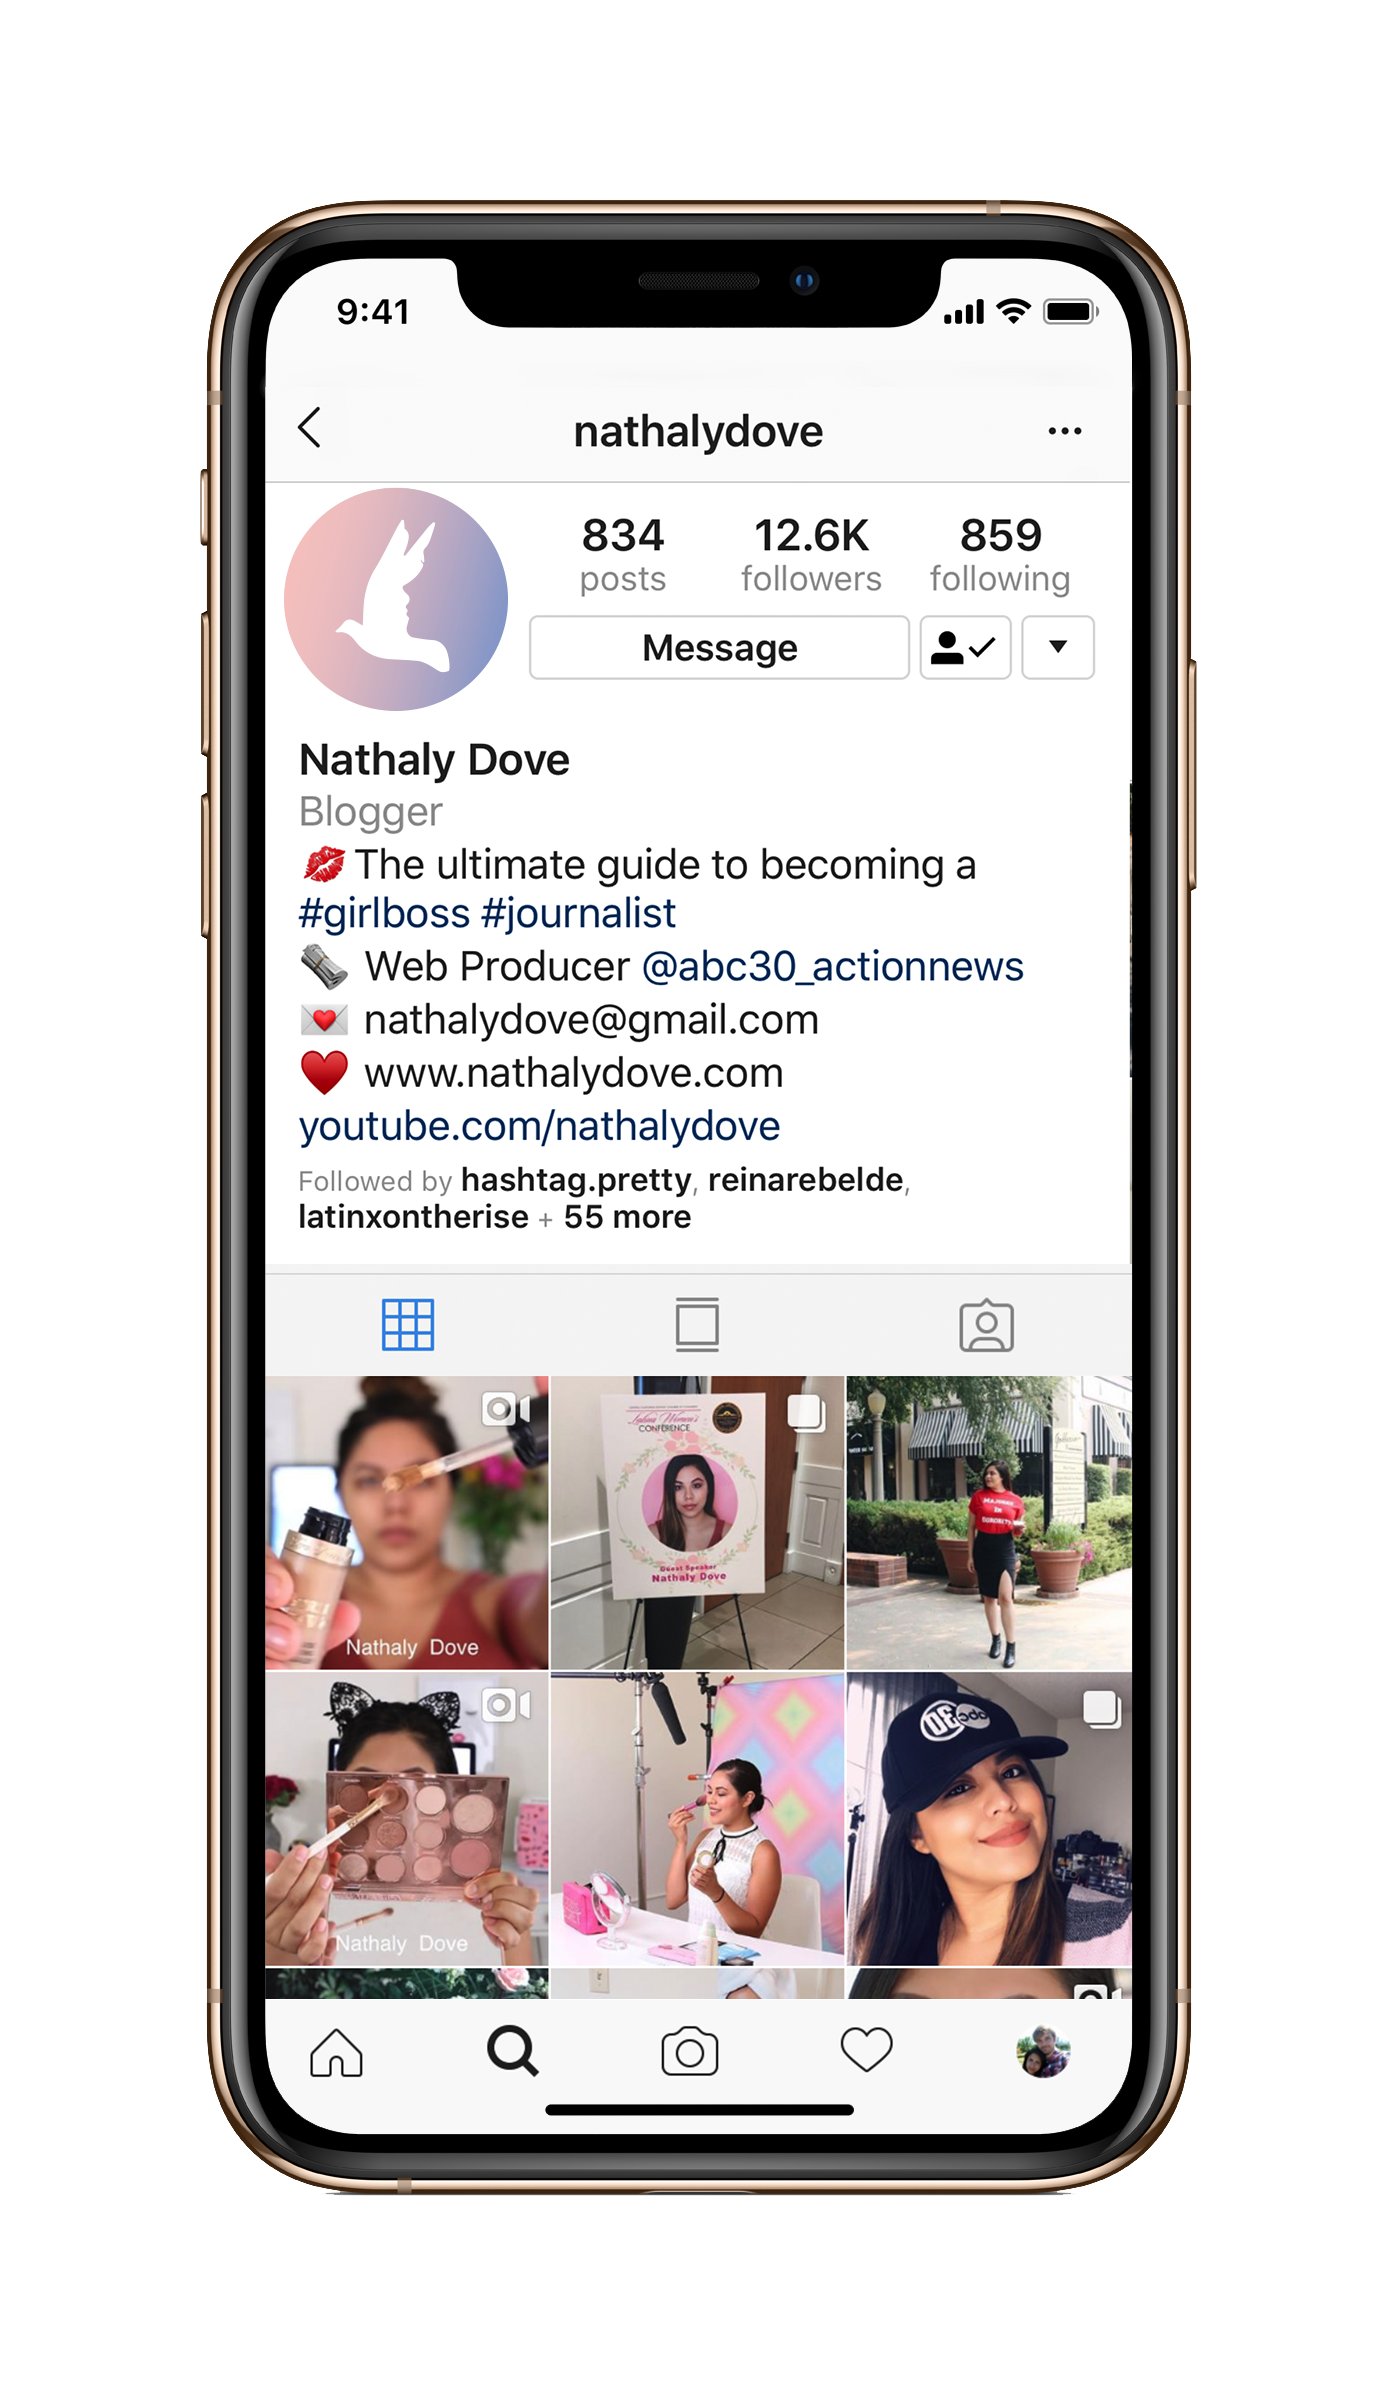 nathaly_dove_fashion_blogger.png